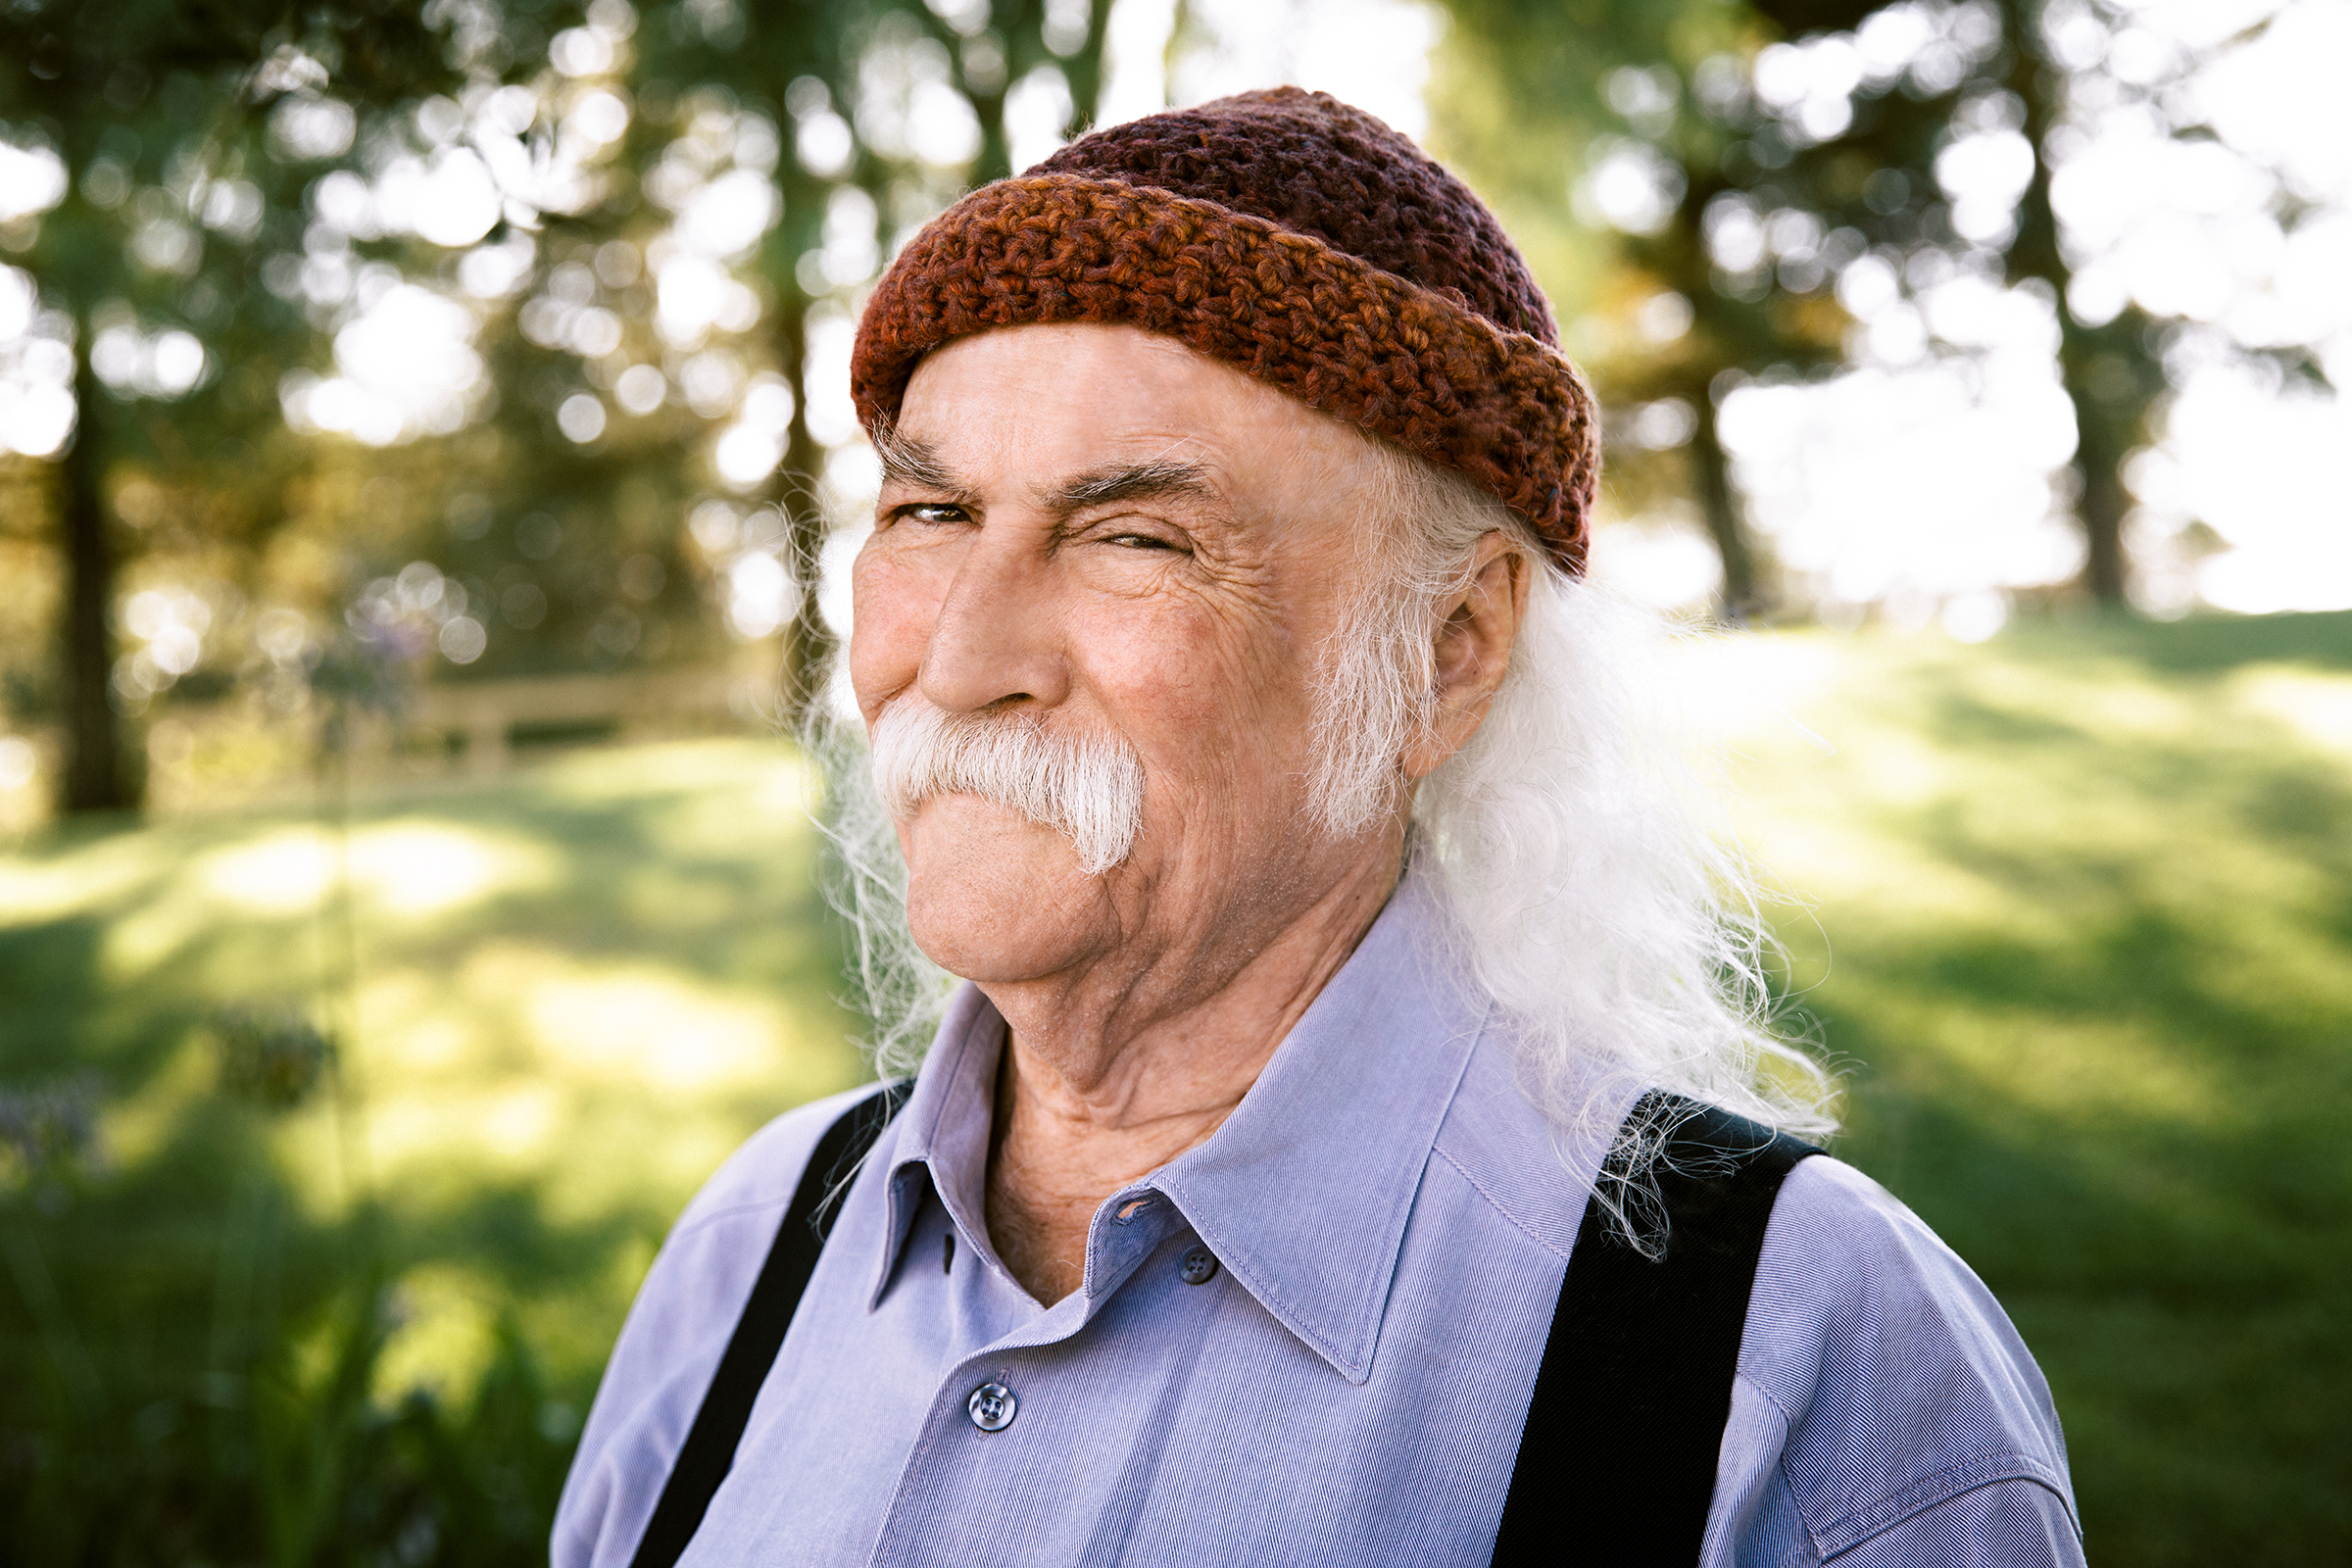 David Crosby Answers Your Questions About Open Marriages, Anti-Vaxxers and More